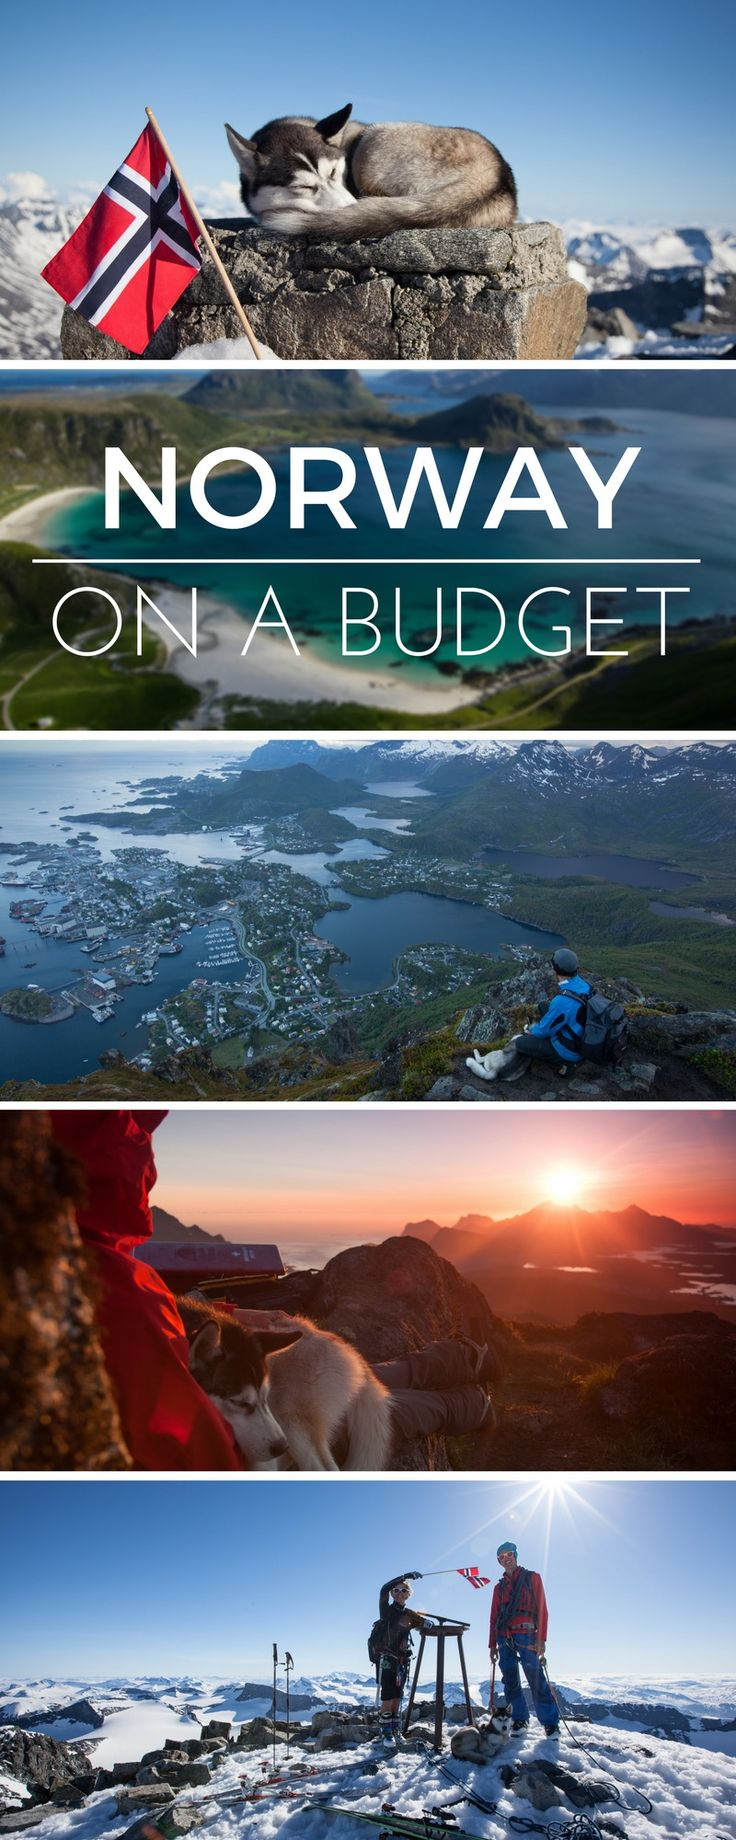 Norway on a Budget - these guys traveled the country without speding a fortune with their dog.